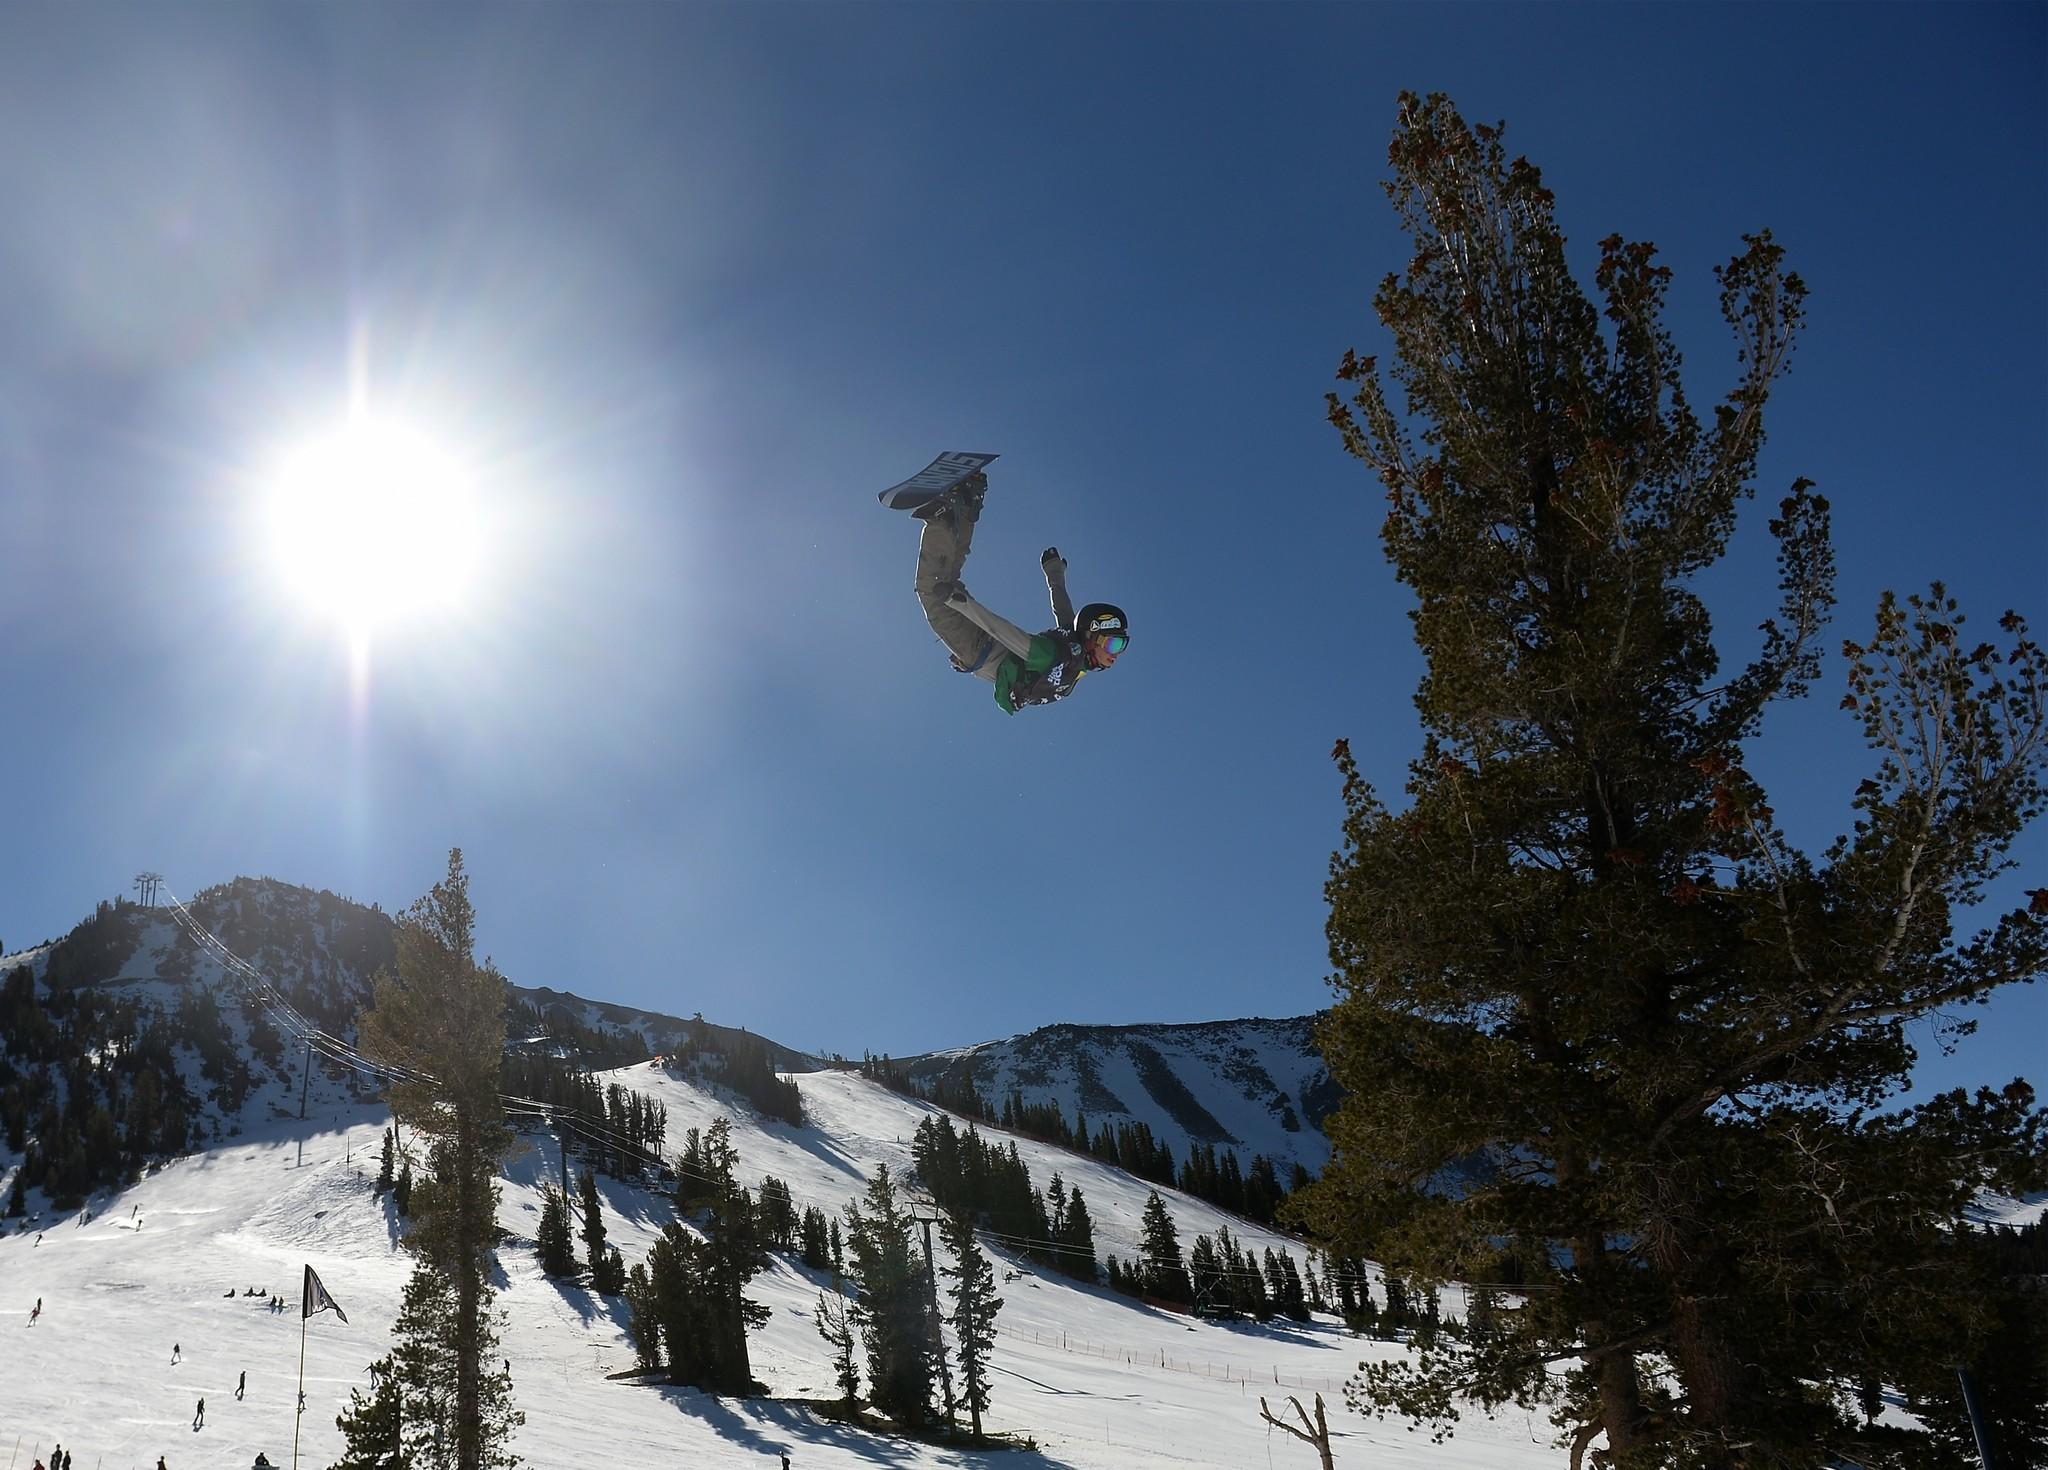 Spencer Link competes during the men's slopestyle Final U.S. Olympic Qualification #5 at the 2014 Sprint U.S. Snowboarding Grand Prix at Mammoth Mountain Resort.